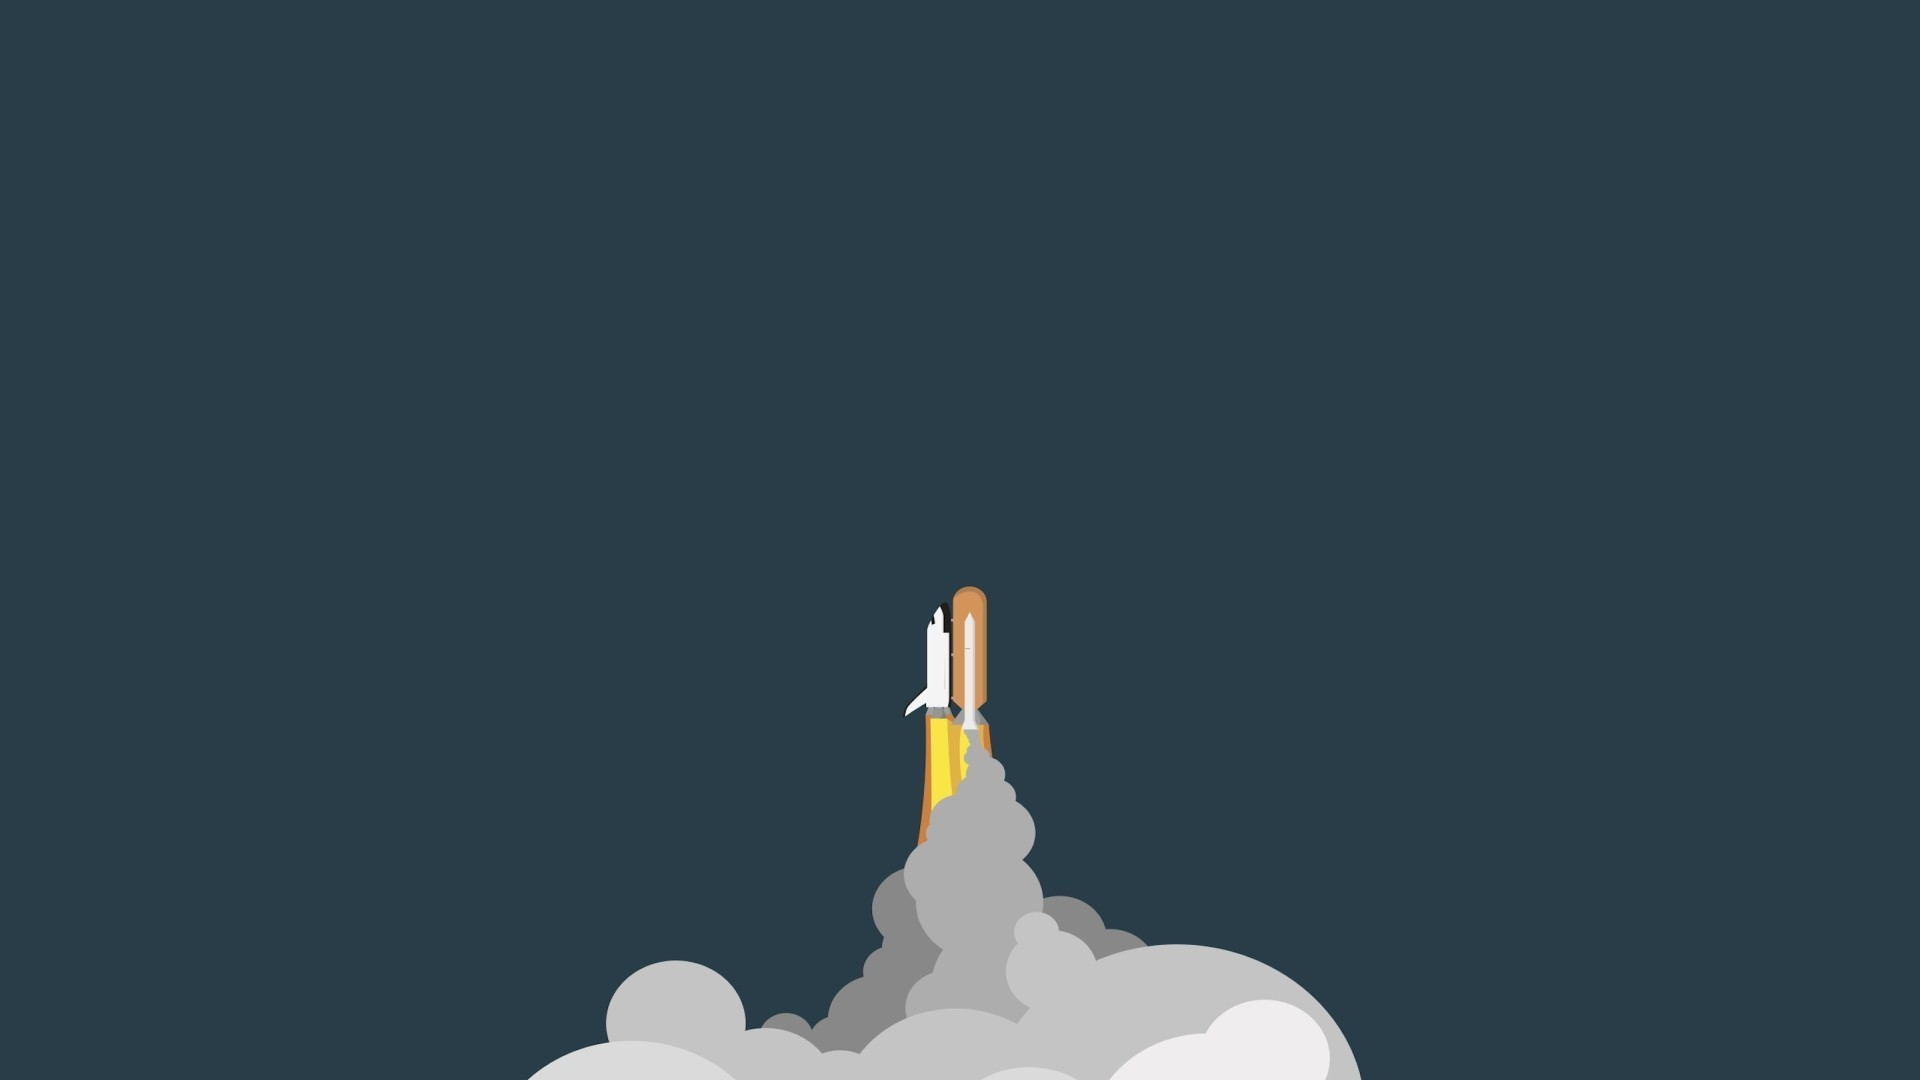 space, Rockets, Minimalism Wallpapers HD / Desktop and Mobile Backgrounds